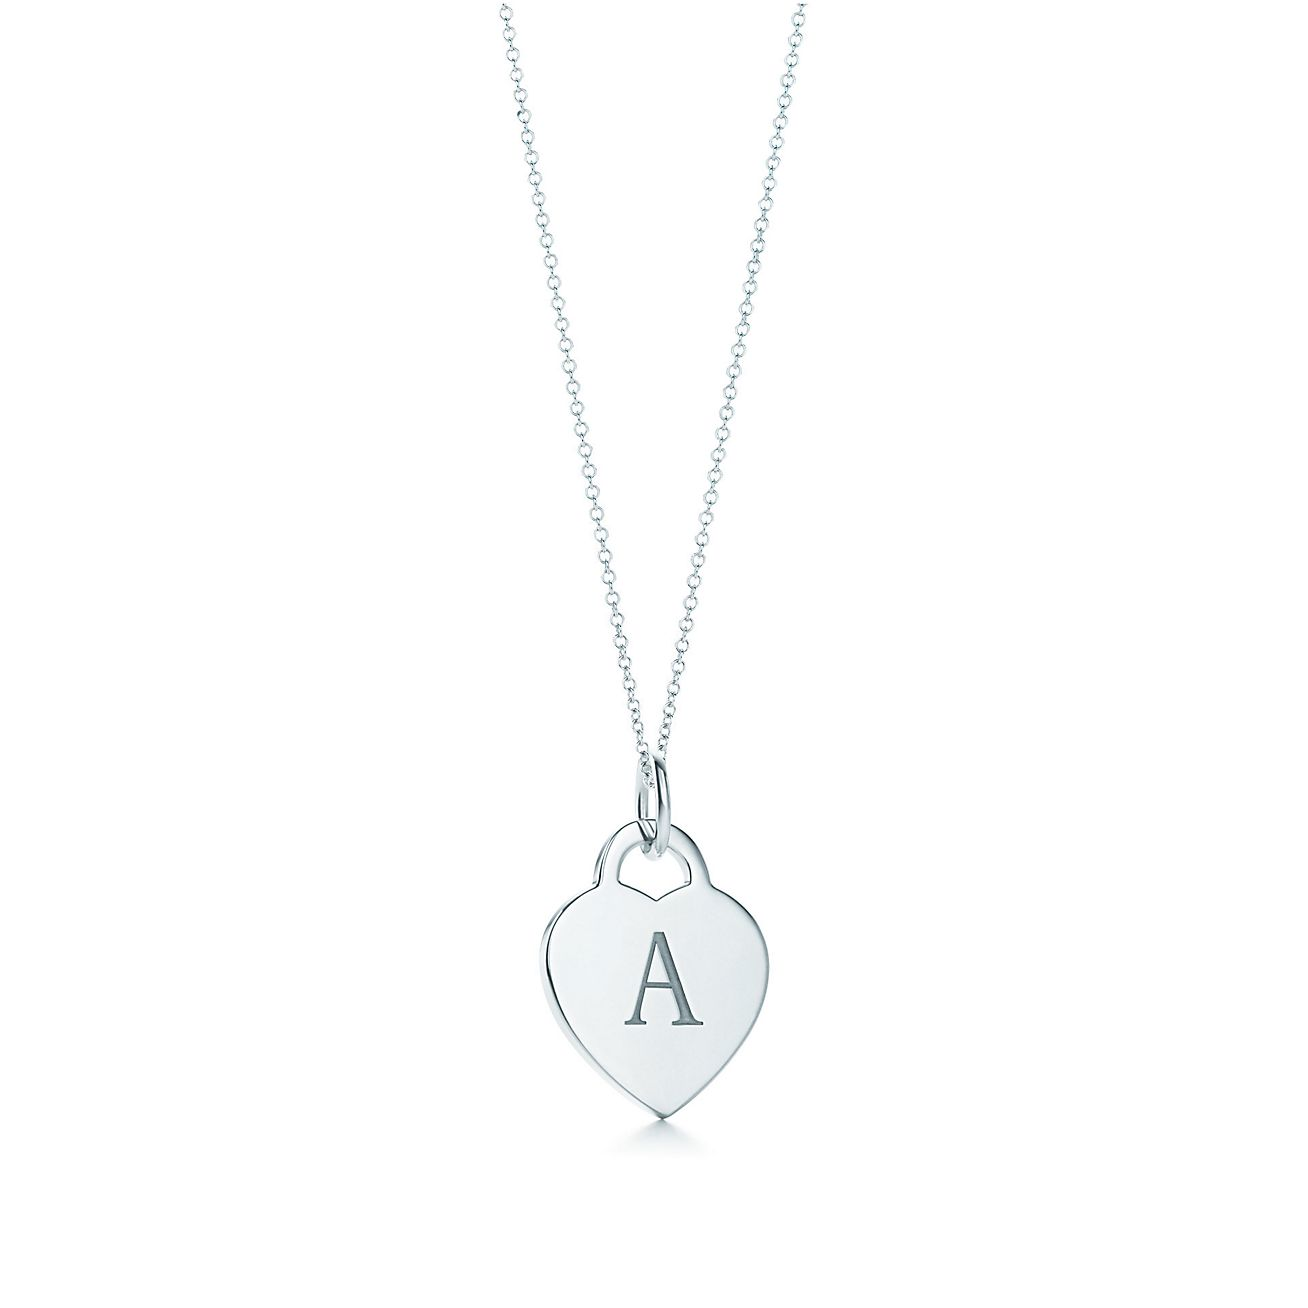 Alphabet heart tag letter C charm in sterling silver Letters A-Z available - Size C Tiffany & Co.